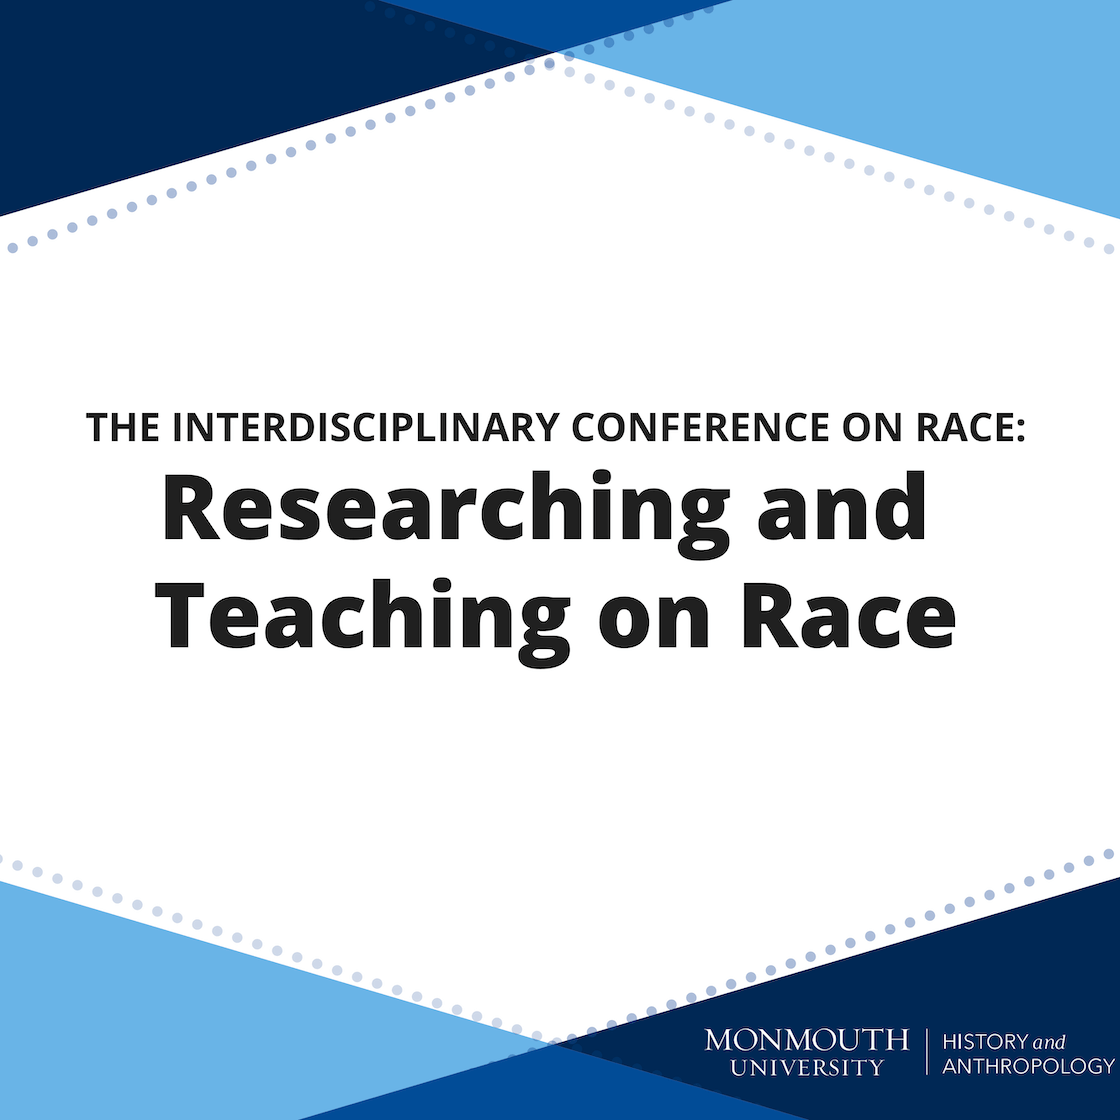 The Interdisciplinary Conference on Race - Researching and Teaching on Race